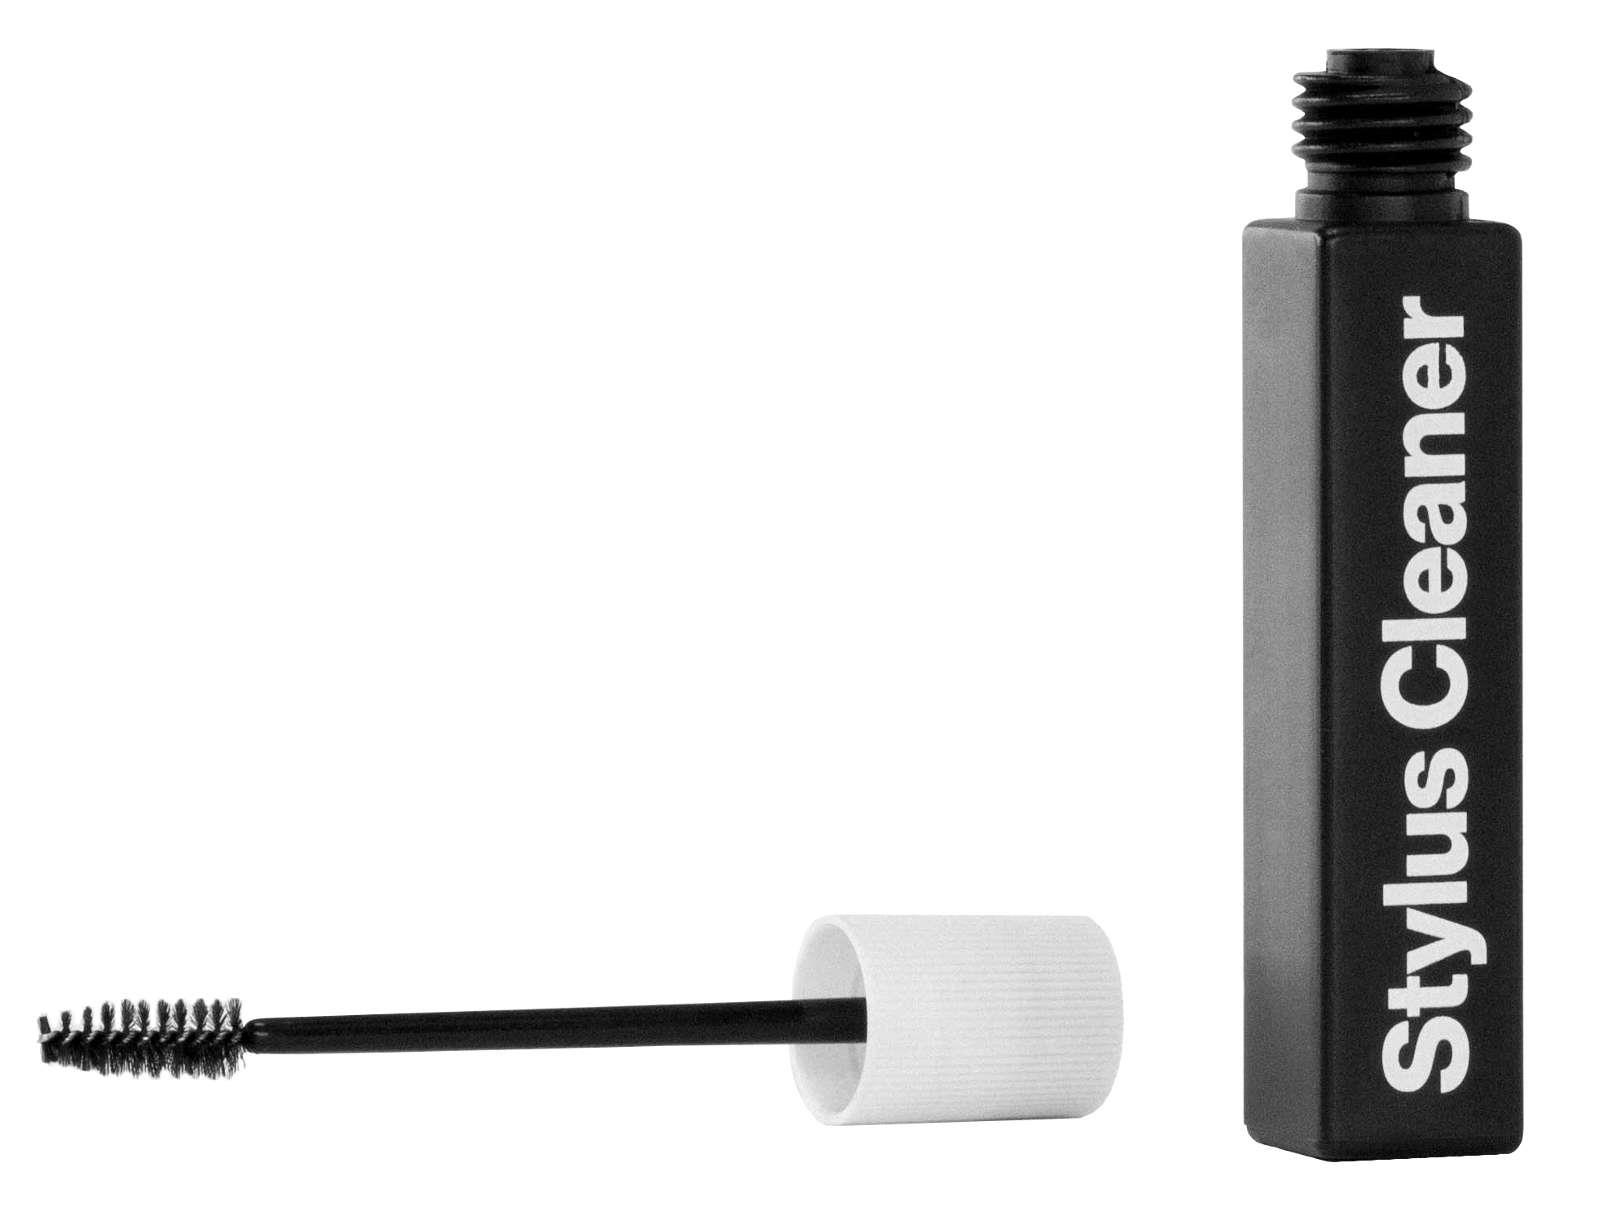 Image of AM Clean Sound Stylus Cleaner 5701289020172